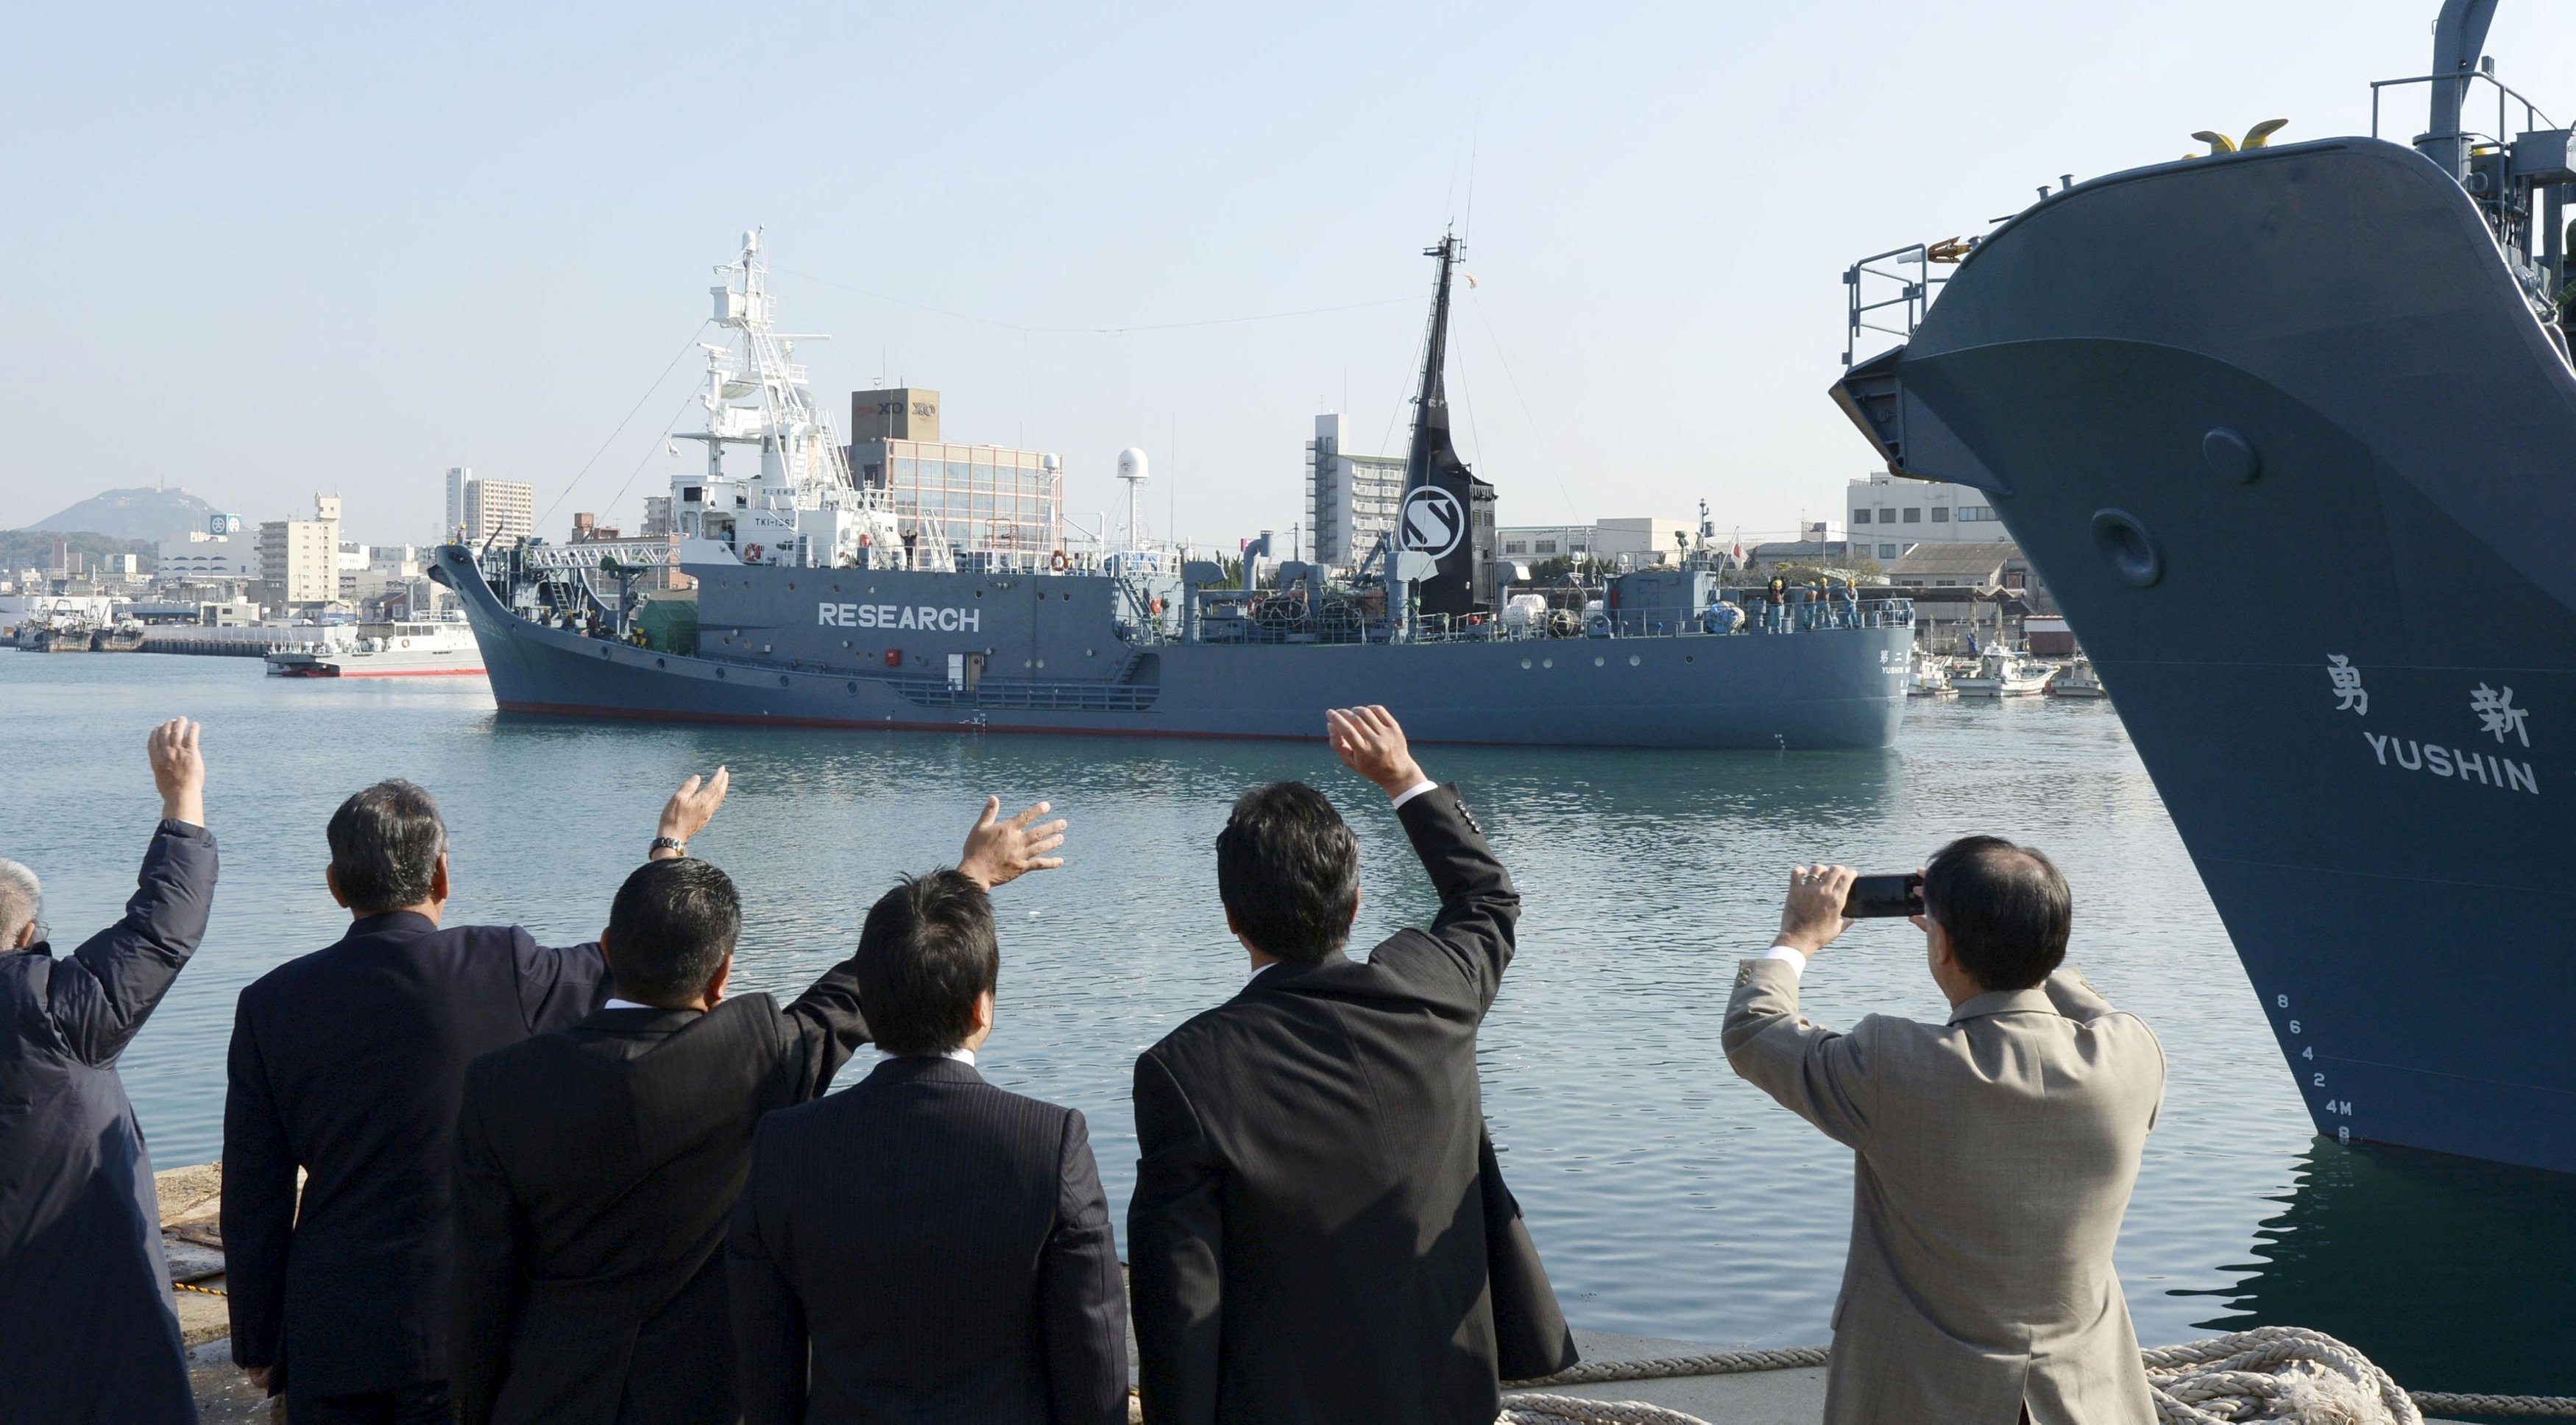 Officials wave as Japanese whaling vessel Yushin Maru No.2 leaves for the Antartic Ocean at a port in Shimonoseki, southwestern Japan on Dec. 1, 2015.